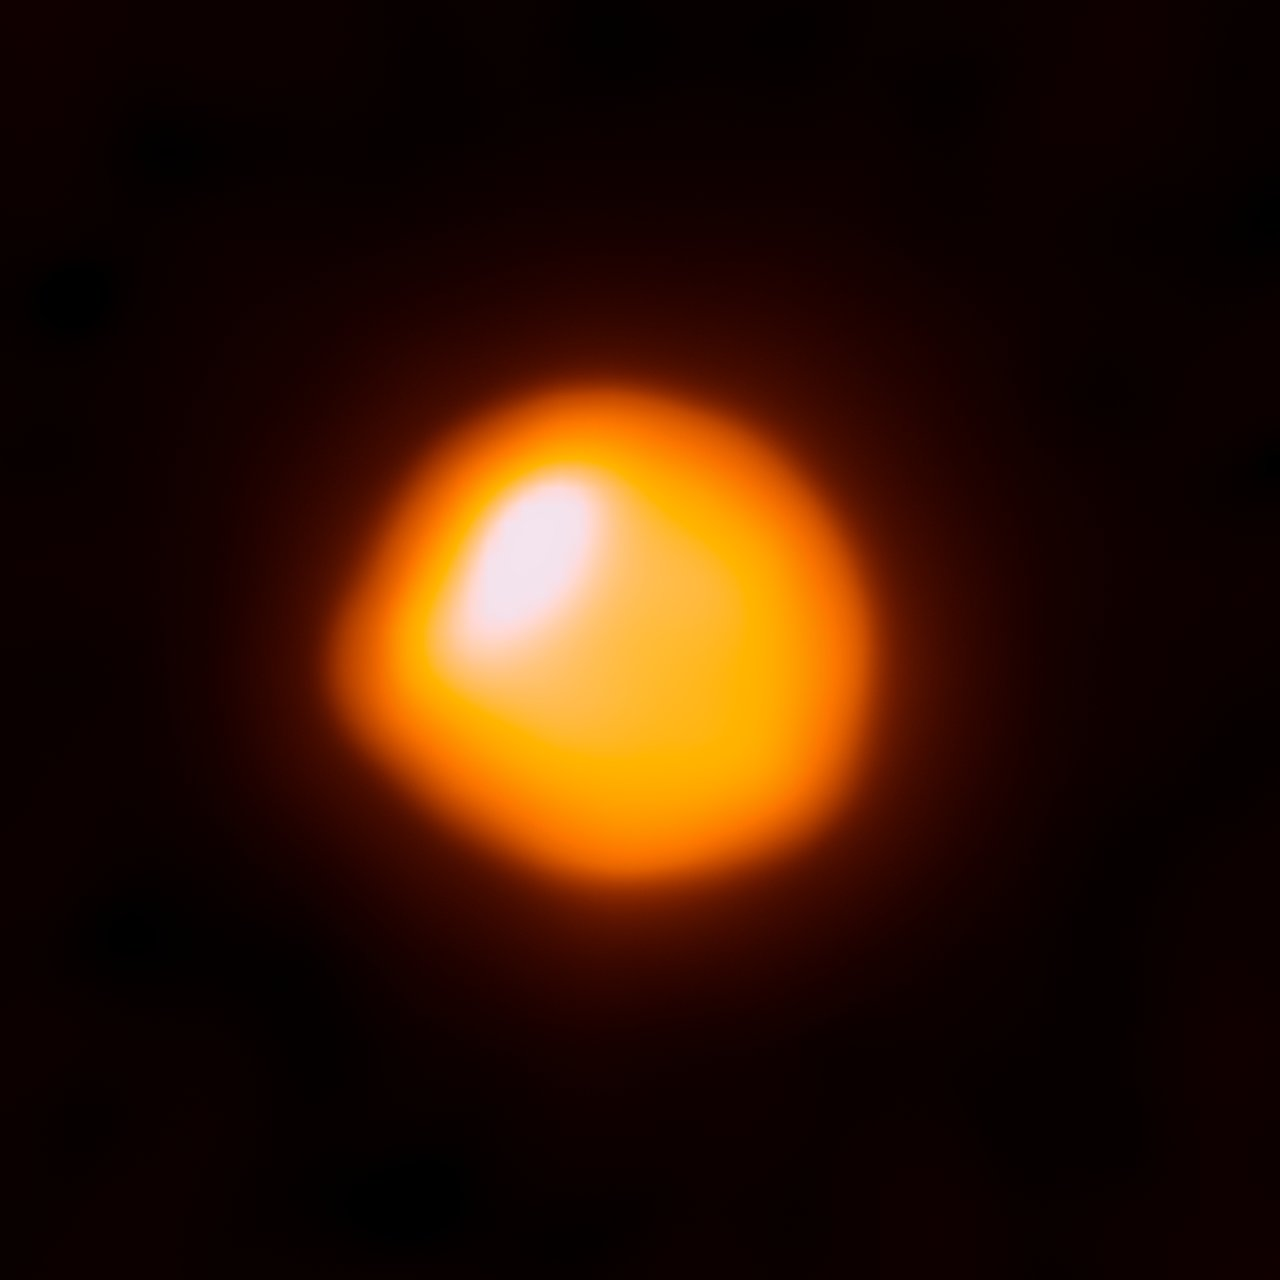 This orange blob shows the nearby star Betelgeuse, as seen by the Atacama Large Millimeter/submillimeter Array (ALMA). This is the first time that ALMA has ever observed the surface of a star and this first attempt has resulted in the highest-resolution image of Betelgeuse available. Betelgeuse is one of the largest stars currently known — with a radius around 1400 times larger than the Sun's in the millimeter continuum. About 600 light-years away in the constellation of Orion (The Hunter), the red supergiant burns brightly, causing it to have only a short life expectancy. The star is just about eight million years old, but is already on the verge of becoming a supernova. When that happens, the resulting explosion will be visible from Earth, even in broad daylight. The star has been observed in many other wavelengths, particularly in the visible, infrared, and ultraviolet. Using ESO's Very Large Telescope astronomers discovered a vast plume of gas almost as large as our Solar System. Astronomers have also found a gigantic bubble that boils away on Betelgeuse's surface. These features help to explain how the star is shedding gas and dust at tremendous rates (eso0927, eso1121). In this picture, ALMA observes the hot gas of the photosphere of Betelgeuse at sub-millimeter wavelengths — where localised increased temperatures explain why it is not symmetric. Scientifically, ALMA can help us to understand the extended atmospheres of these hot, blazing stars. Links:  Size comparison: Betelgeuse and the Sun